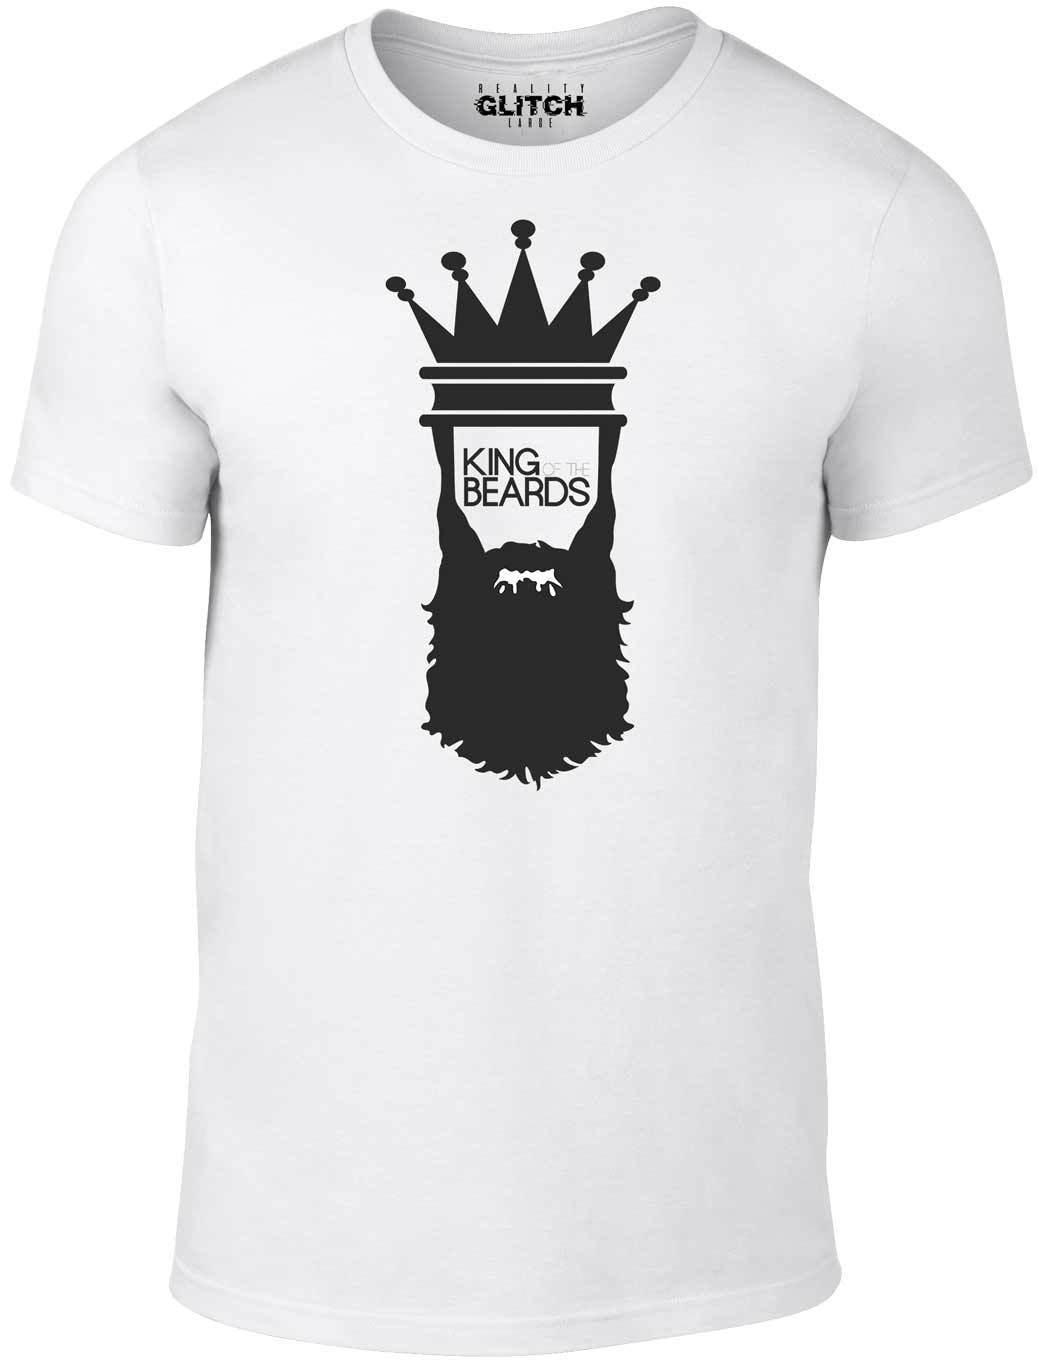 8d93e35ea King Of Beards T Shirt Funny T Shirt Retro Designer Fashion Facial Hair  Cool Cool Casual Pride T Shirt Men Unisex T Shirts In A Day Awesome Tee  Shirt ...